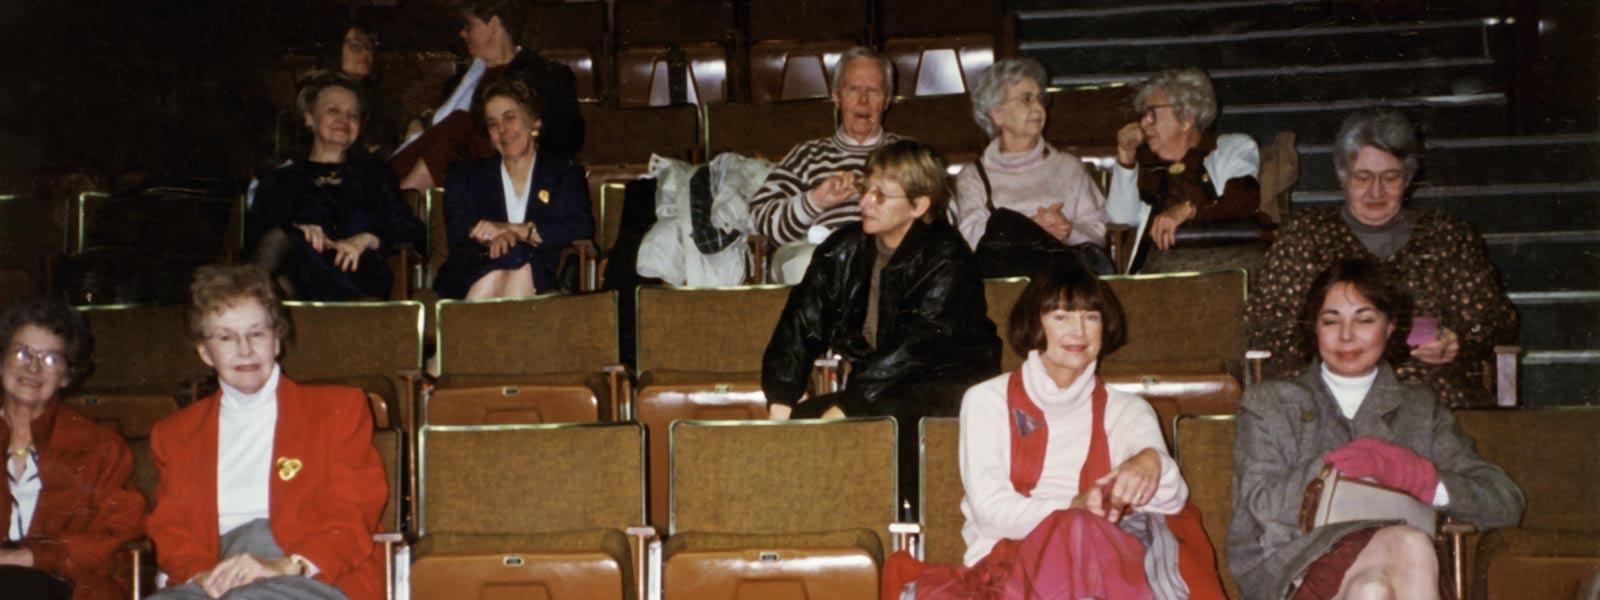 Attending a School of Dance performance, 1997.